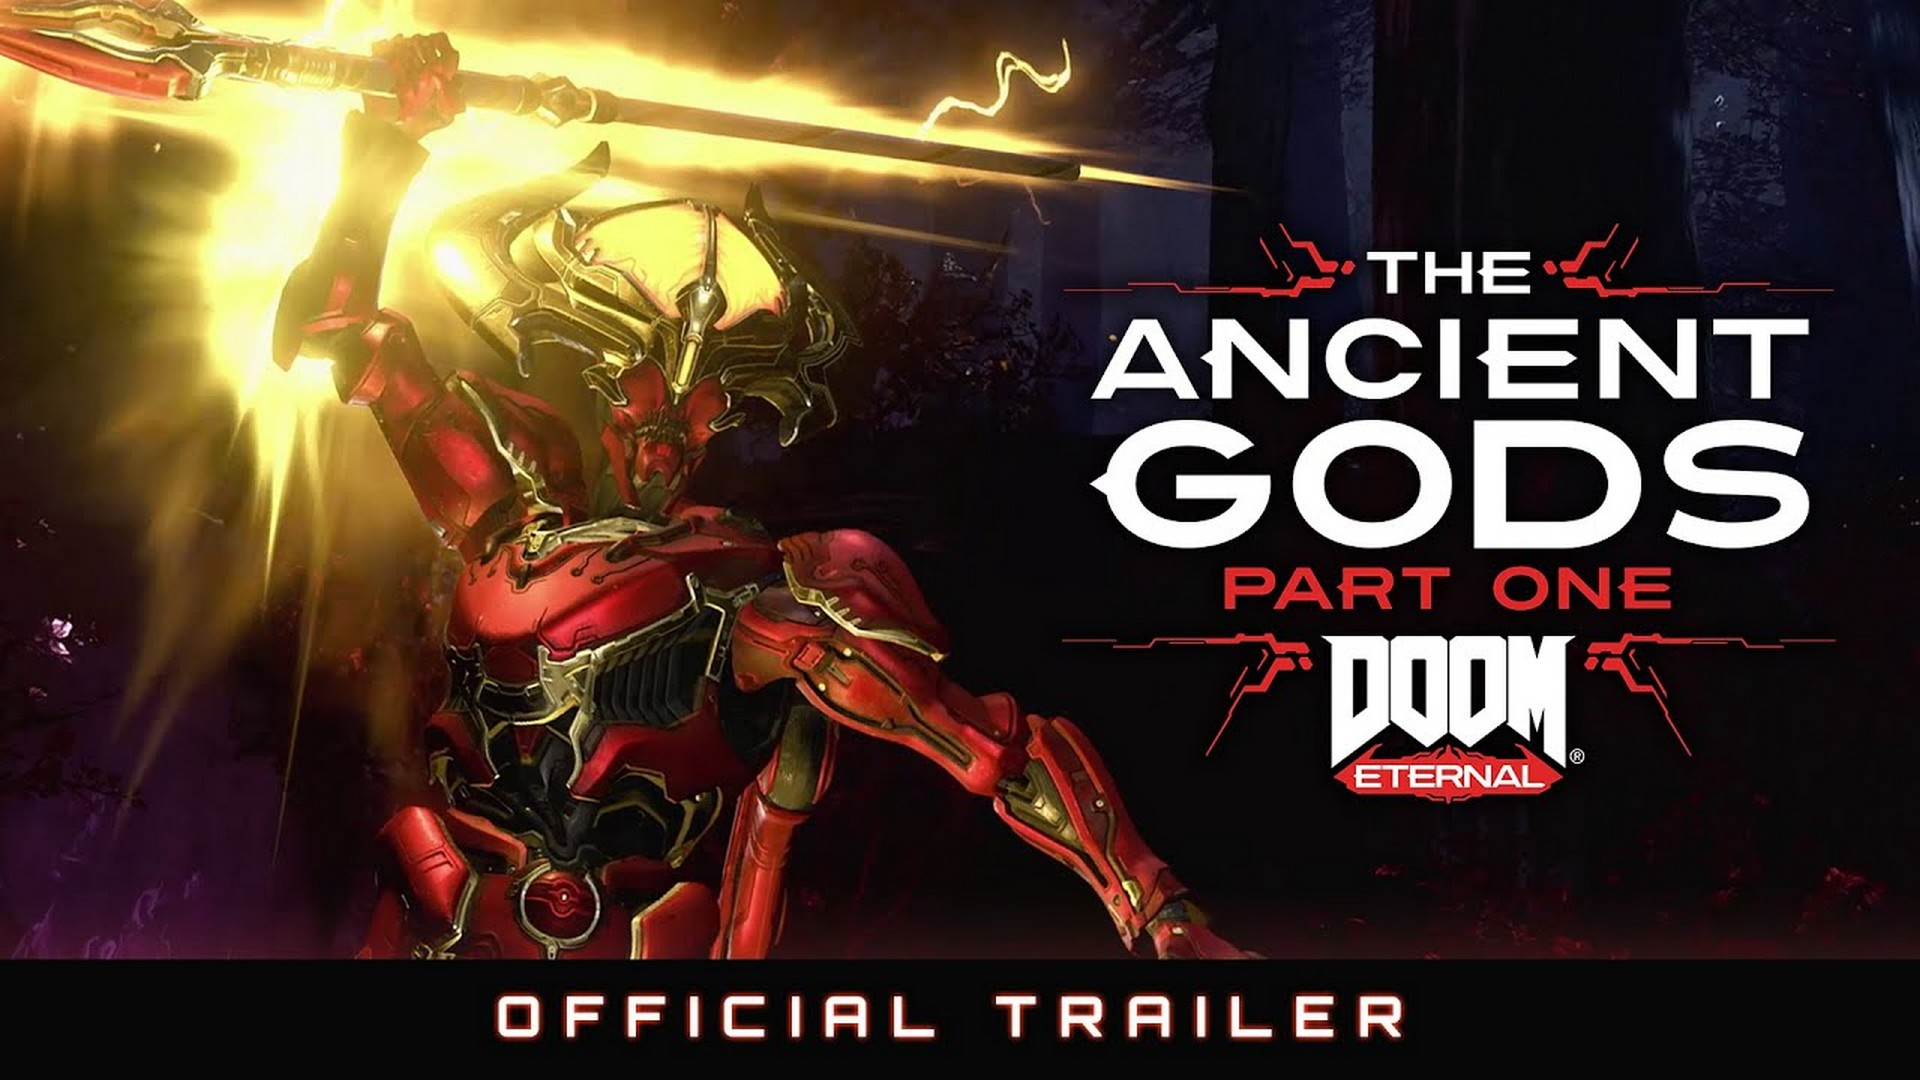 DOOM Eternal: The Ancient Gods, Part One – New Trailer & Release Date Revealed At Gamescom Opening Night Live